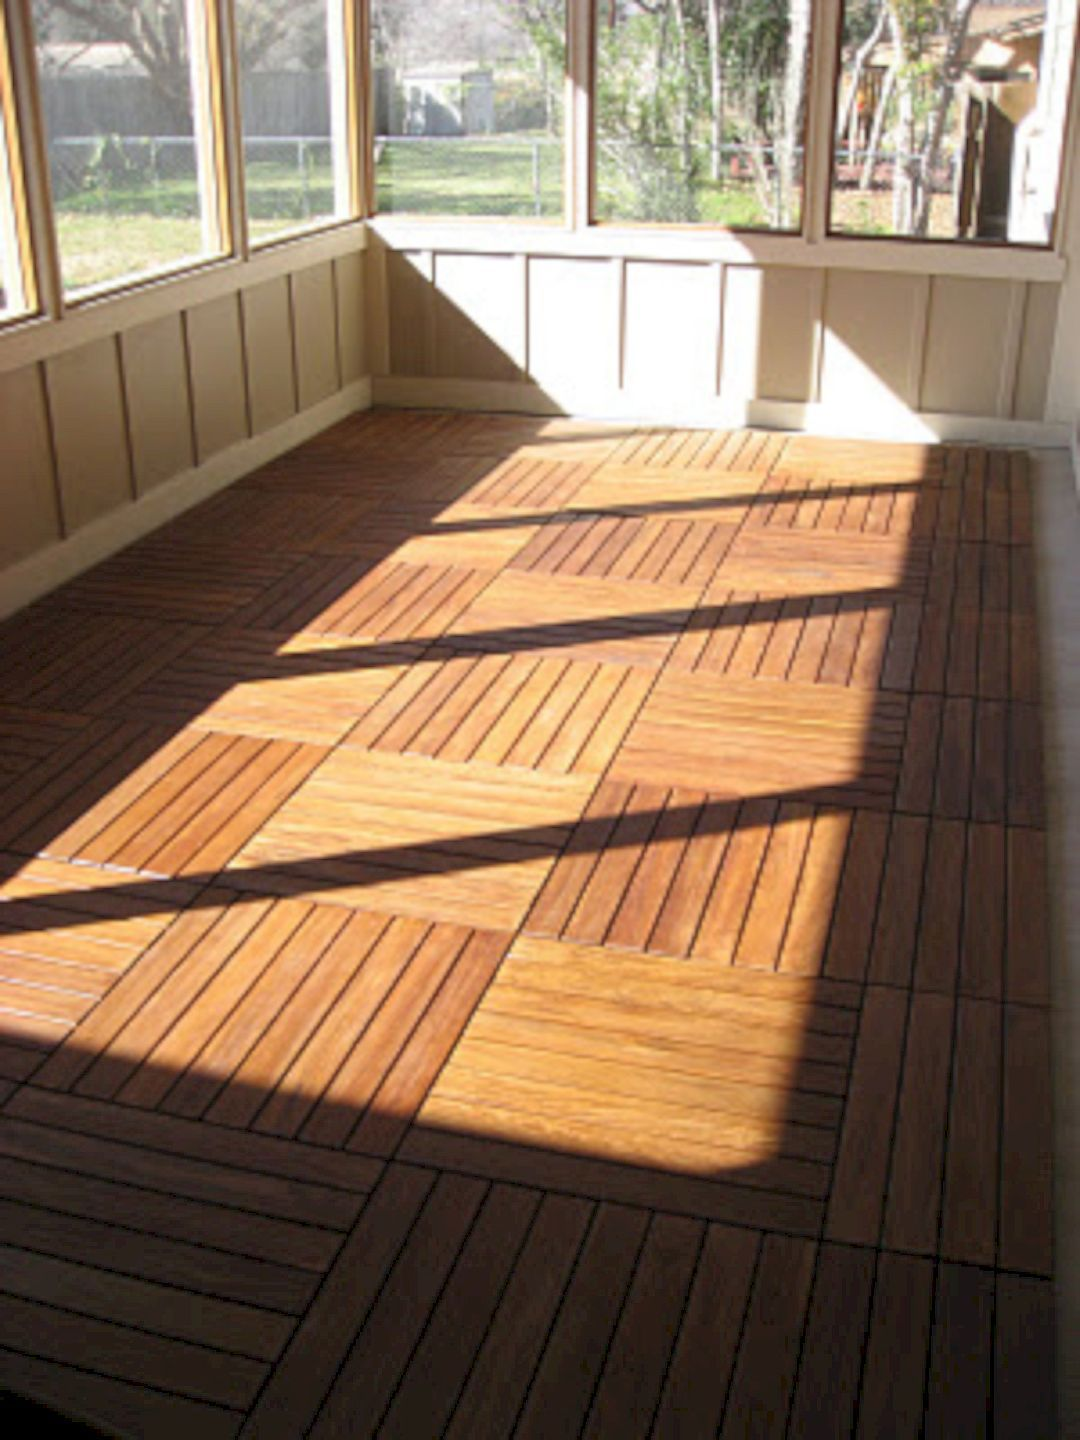 8 Ways To Have More Appealing Screened Porch Deck House With